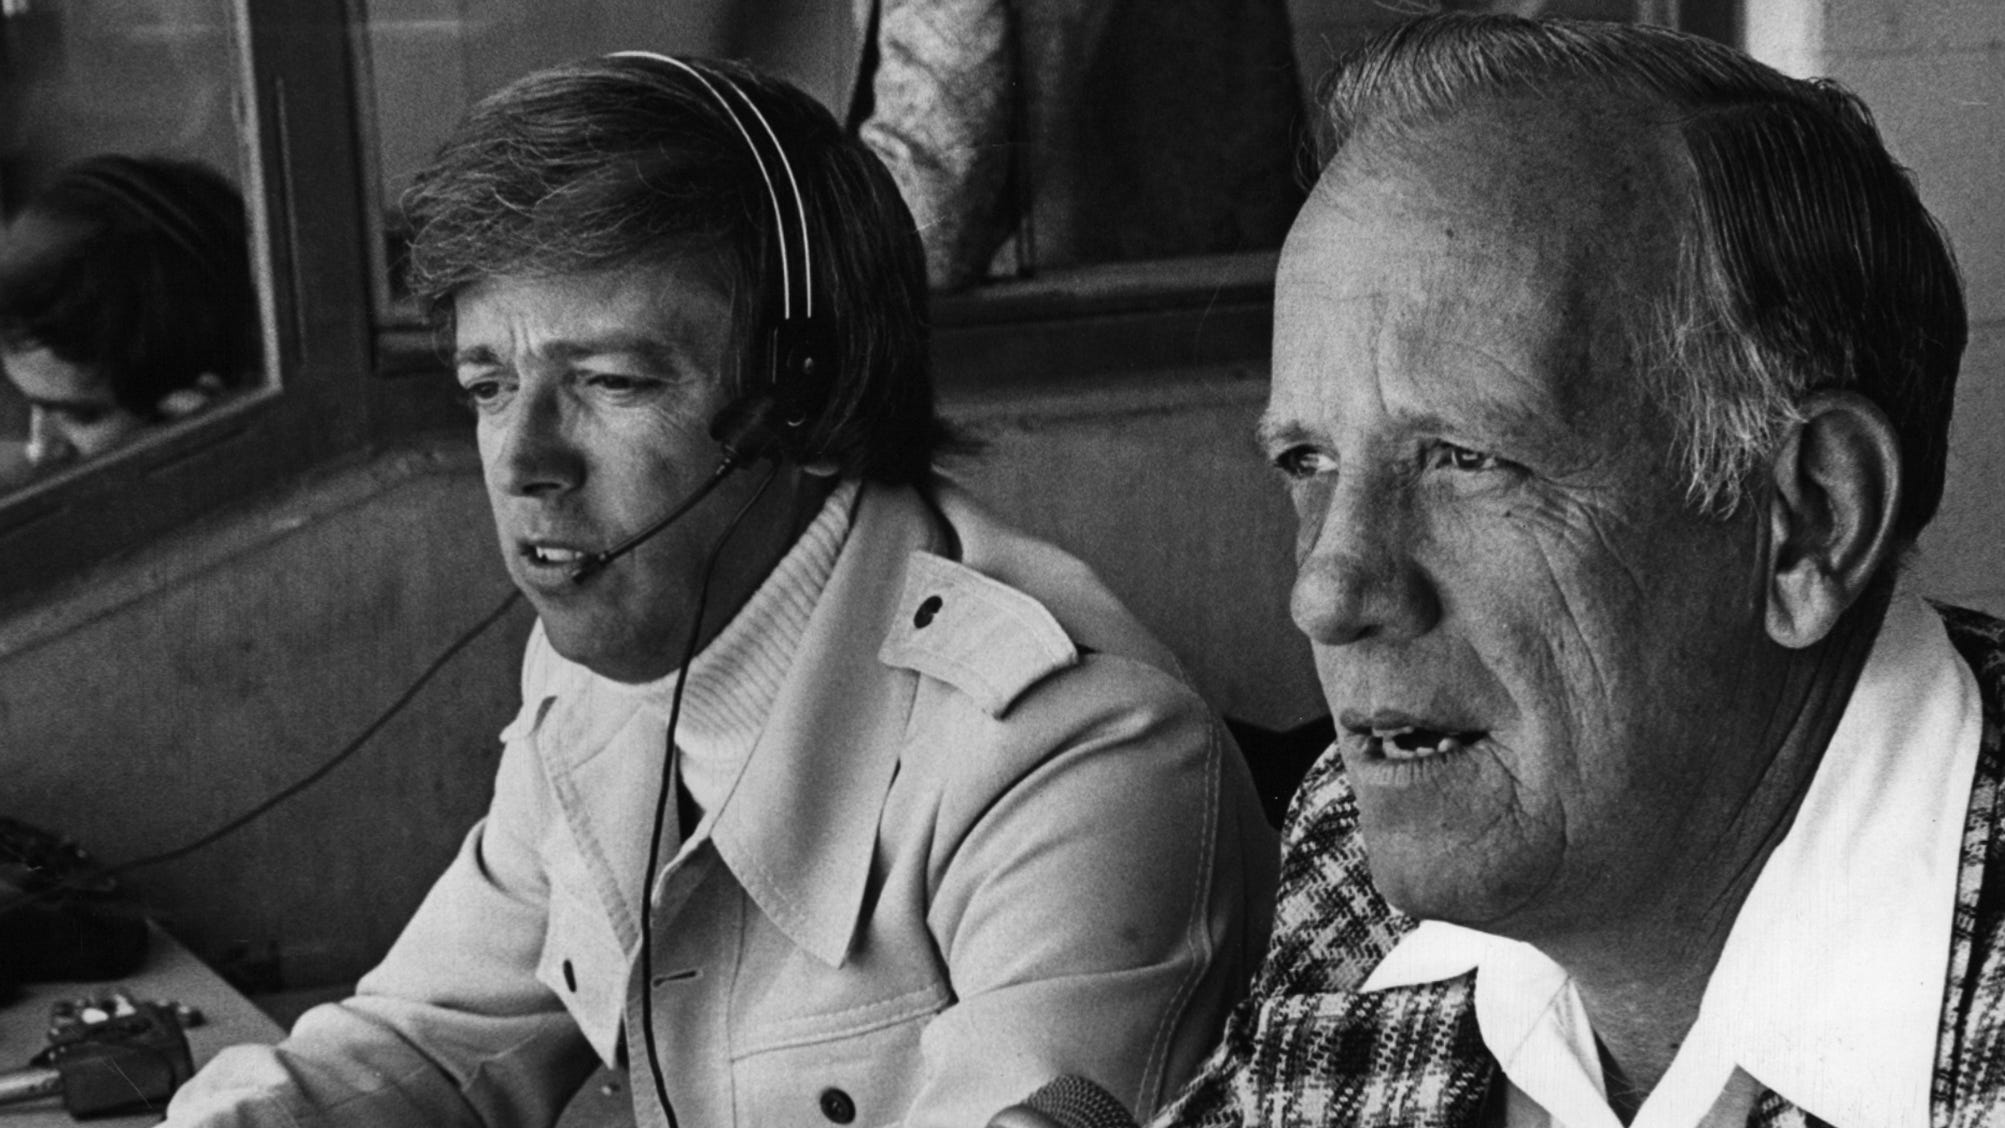 """APRIL 11, 1976: Reds' Mikemen Marty Brennaman, left, and Joe Nuxhall. The Enquirer/Bob Free scanned September 14, 2012 FROM A SUNDAY APRIL 11, 1976 ARTICLE BY DAVID FUSELIER, ENQUIRER SPORTS REPORTER: Marty Brennaman is an unabashed rooter, sort of a professional fan. Different broadcasters profess different allegiances, but you know immediately this one belongs to the Reds. """"Yeah, I'm a homer,"""" he says with no shame. """"I plead guilty to that."""" But he points out not so long ago he was working high school games for a tiny radio station in Salisbury, N.C. Now he sits in booth A at Riverfront Coliseum and his voice radiates electronically through 124 stations in seven states."""